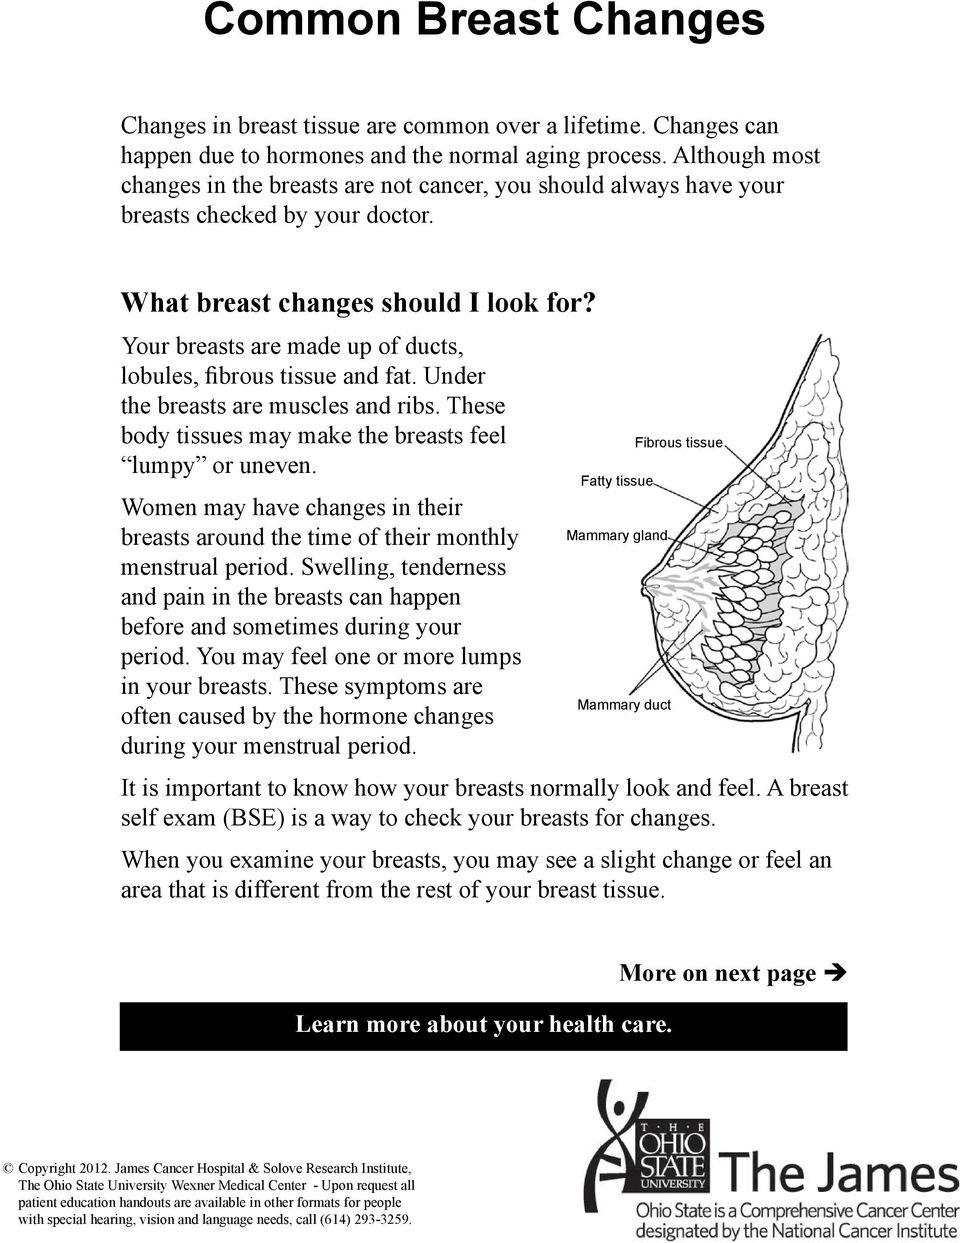 Your breasts are made up of ducts, lobules, fibrous tissue and fat. Under the breasts are muscles and ribs. These body tissues may make the breasts feel lumpy or uneven.